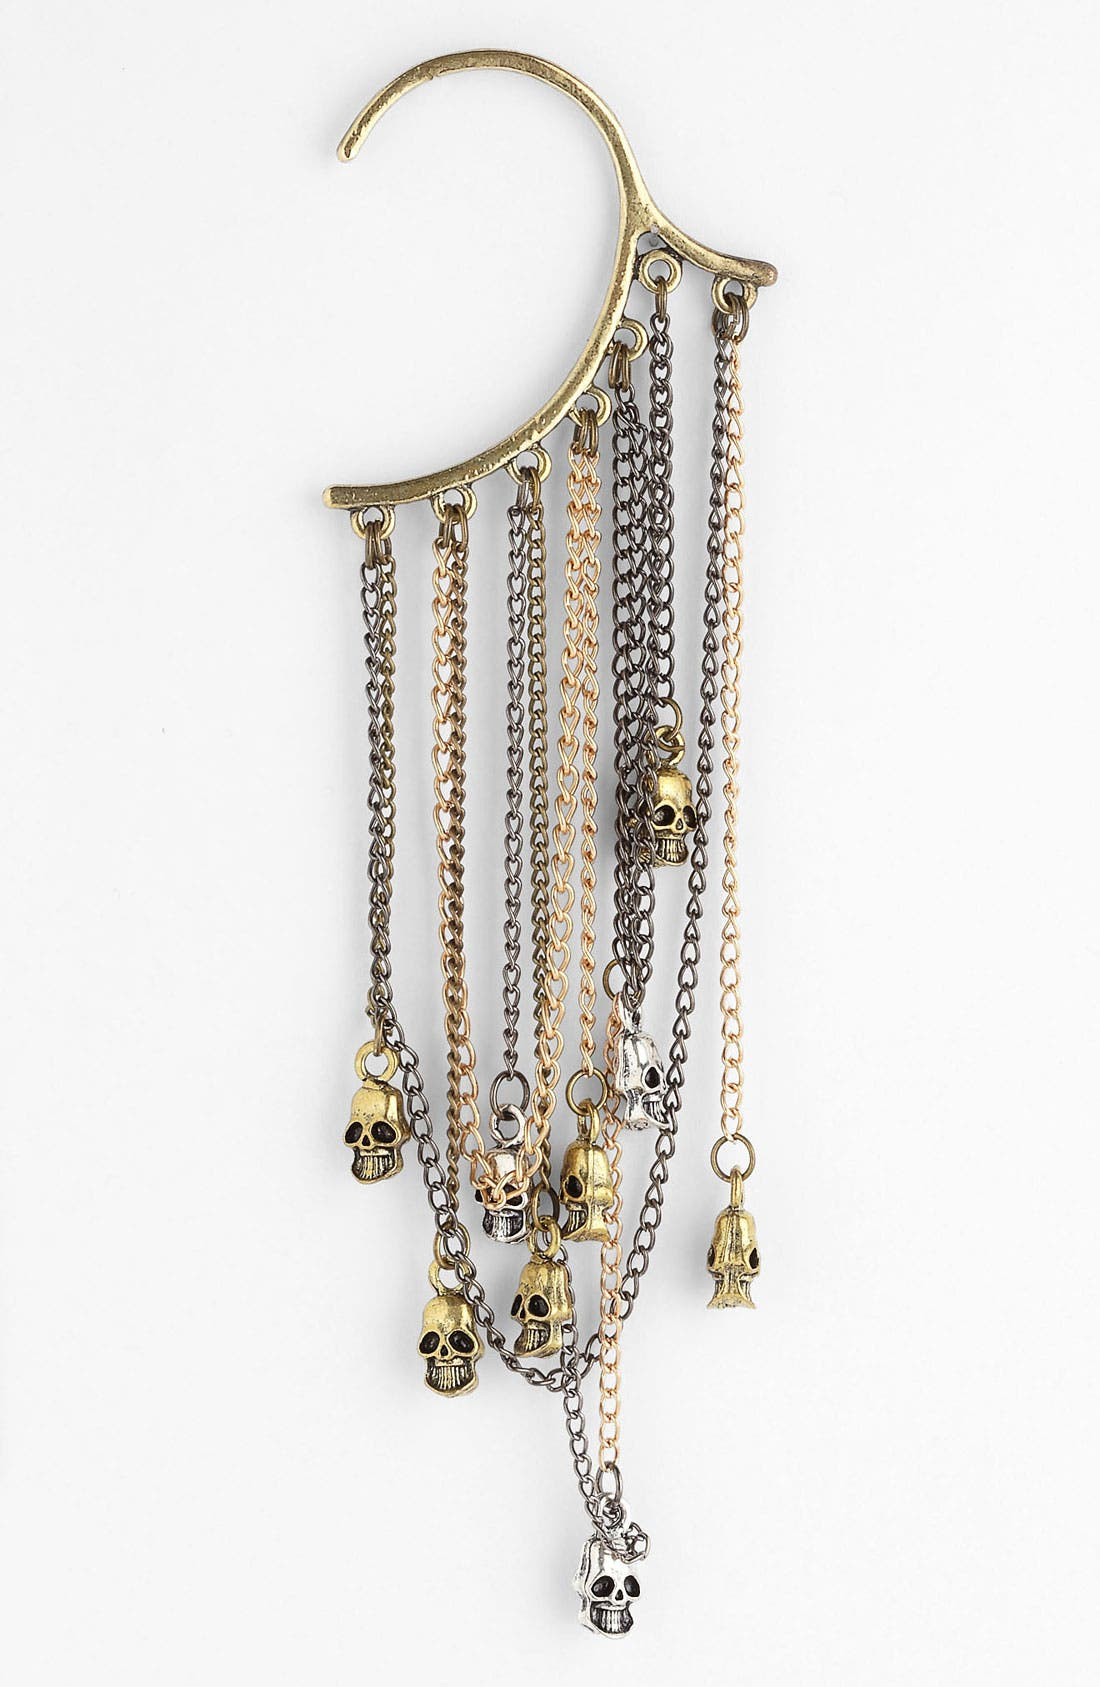 Alternate Image 1 Selected - By Samii Ryan 'Believe in Magic' Ear Cuff (Nordstrom Exclusive)